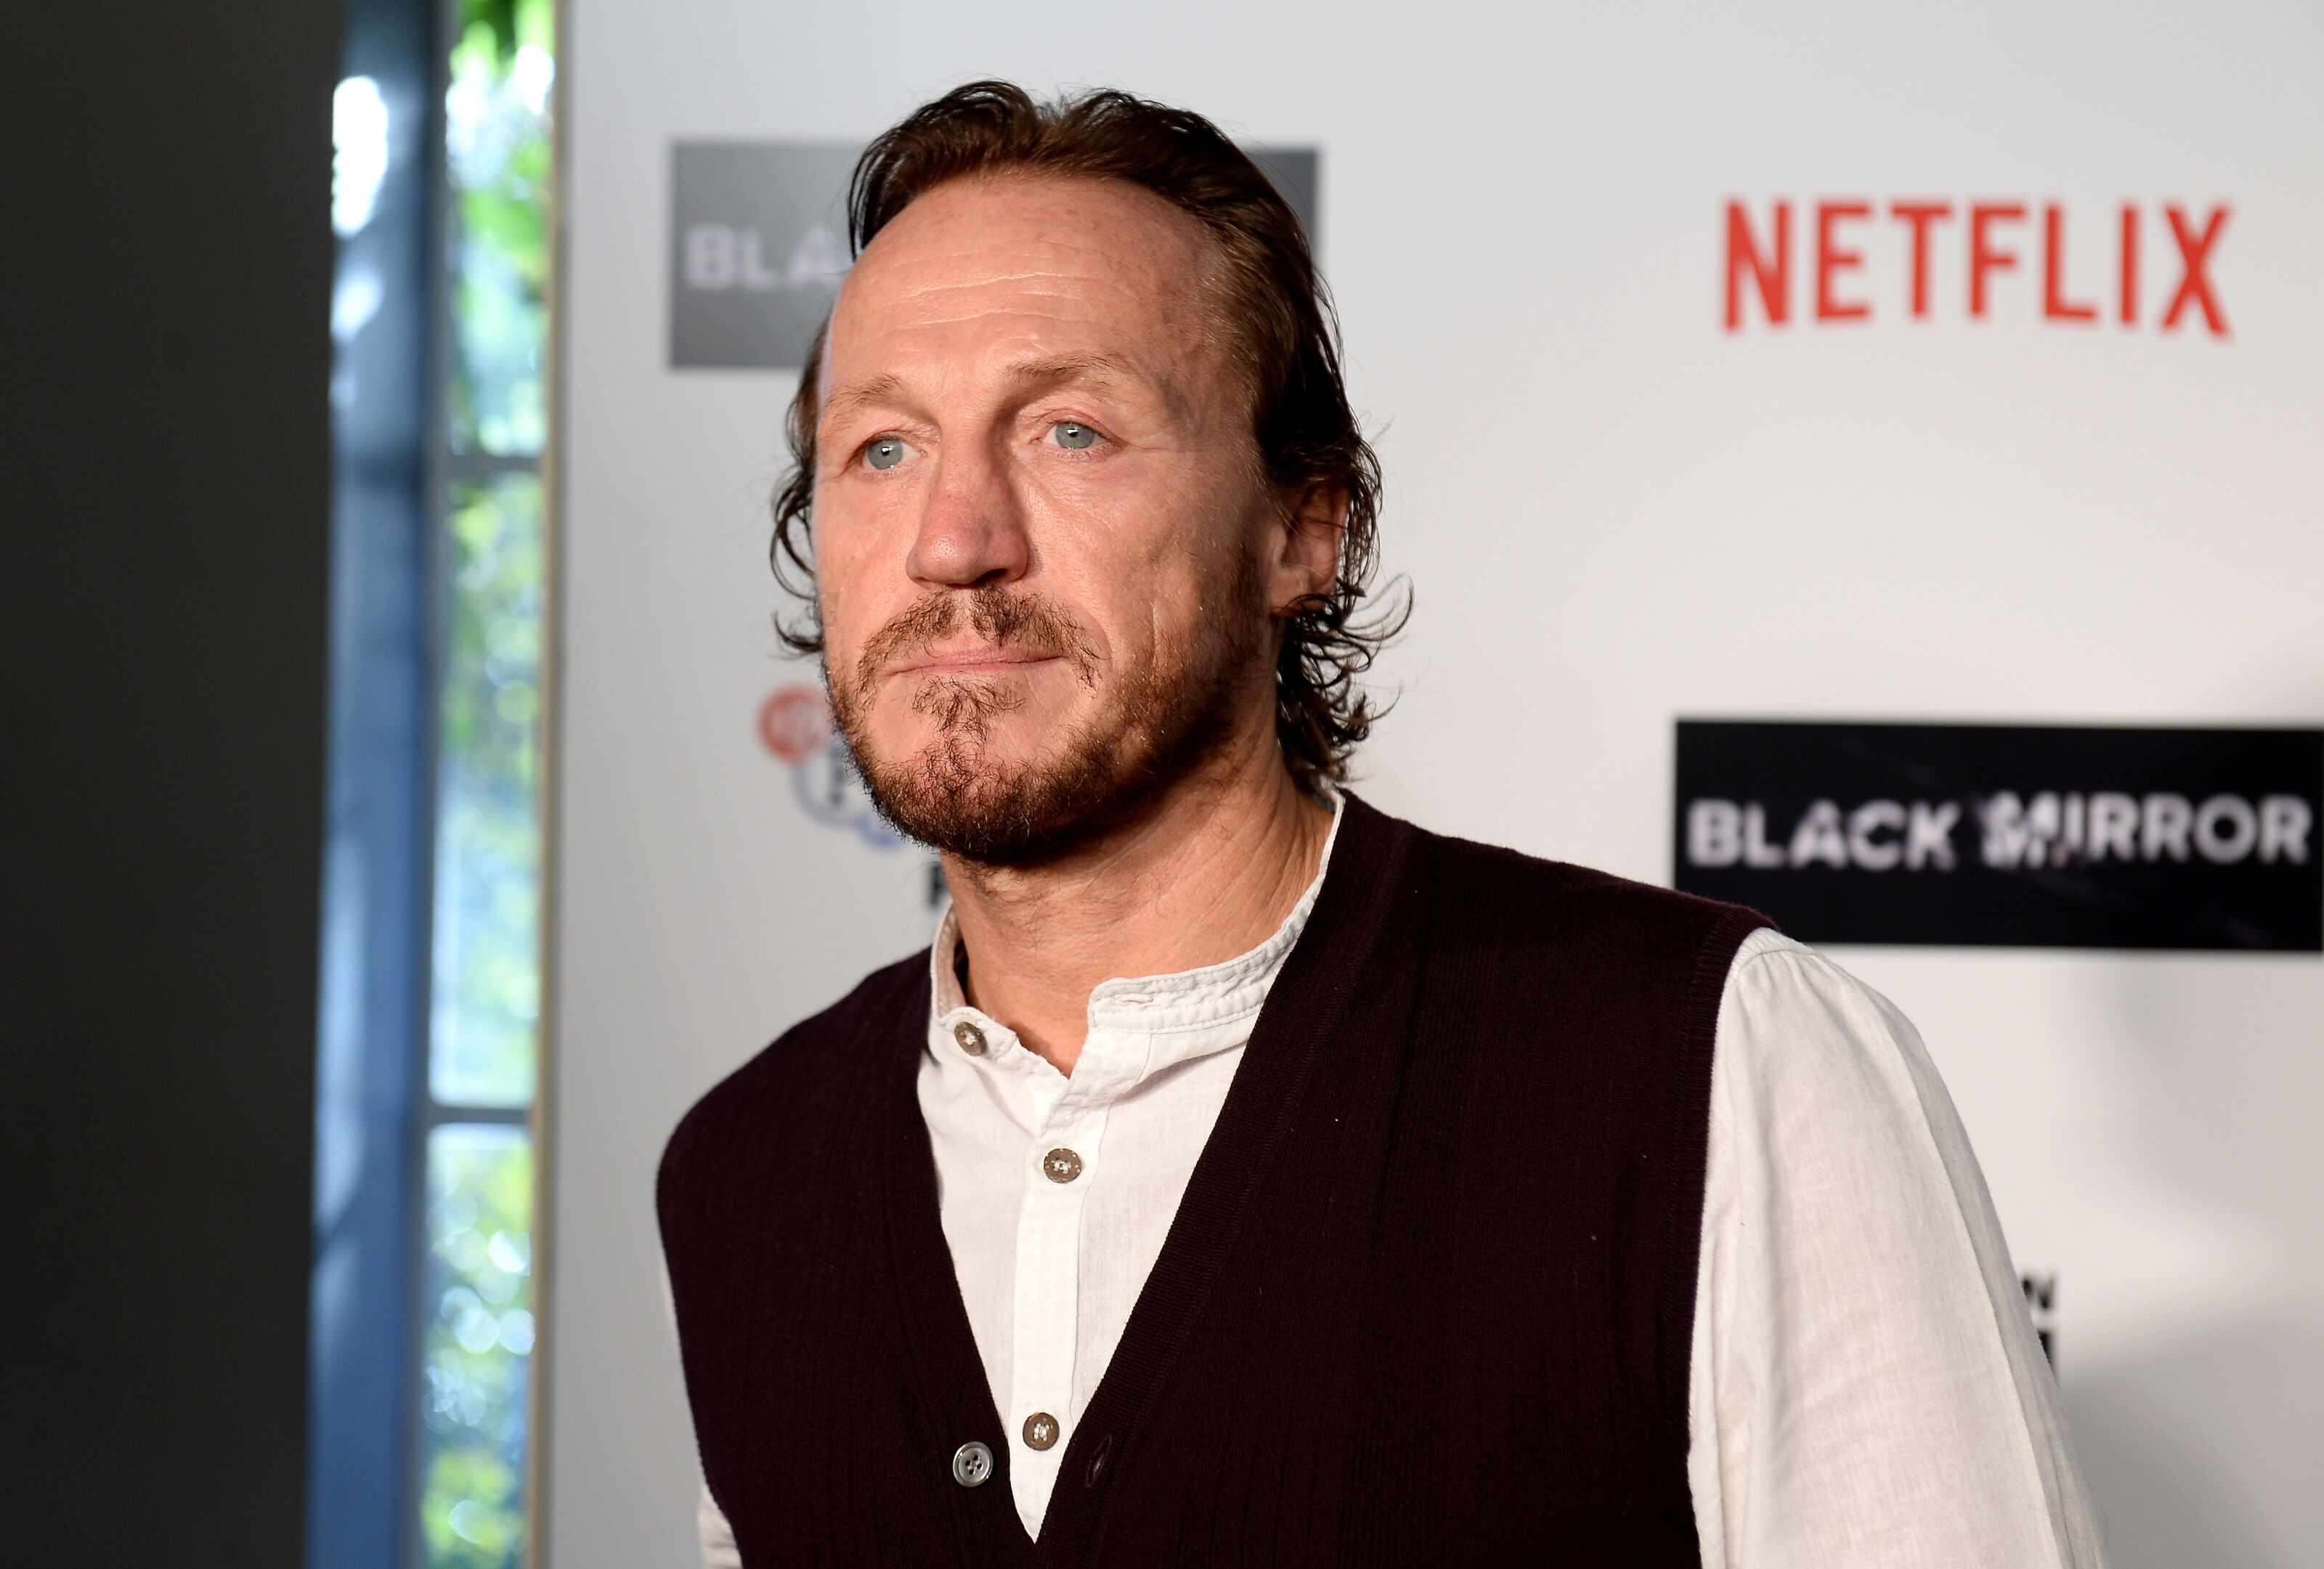 The Dark Tower series casts Jerome Flynn from Game of Thrones